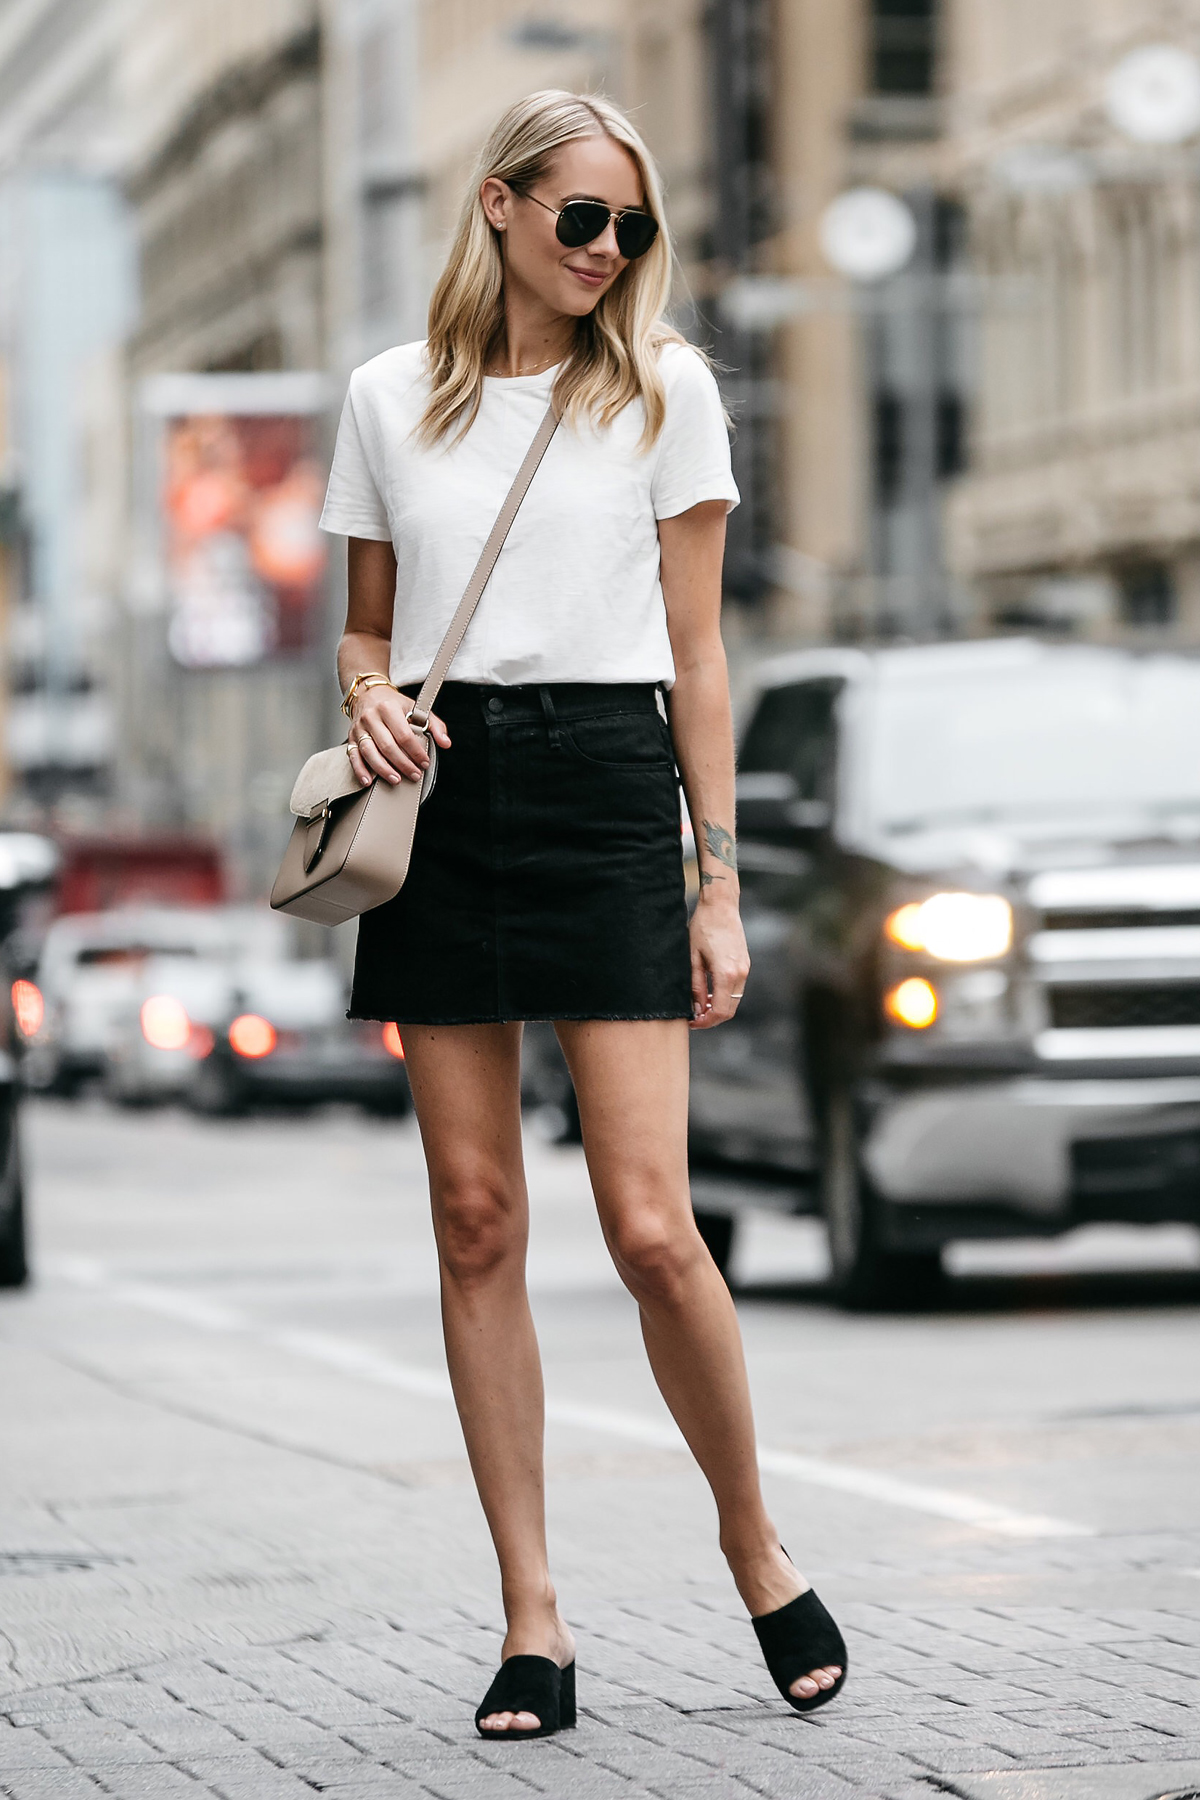 66a5f8877611 A CASUAL WAY TO WEAR A BLACK DENIM SKIRT | Fashion Jackson